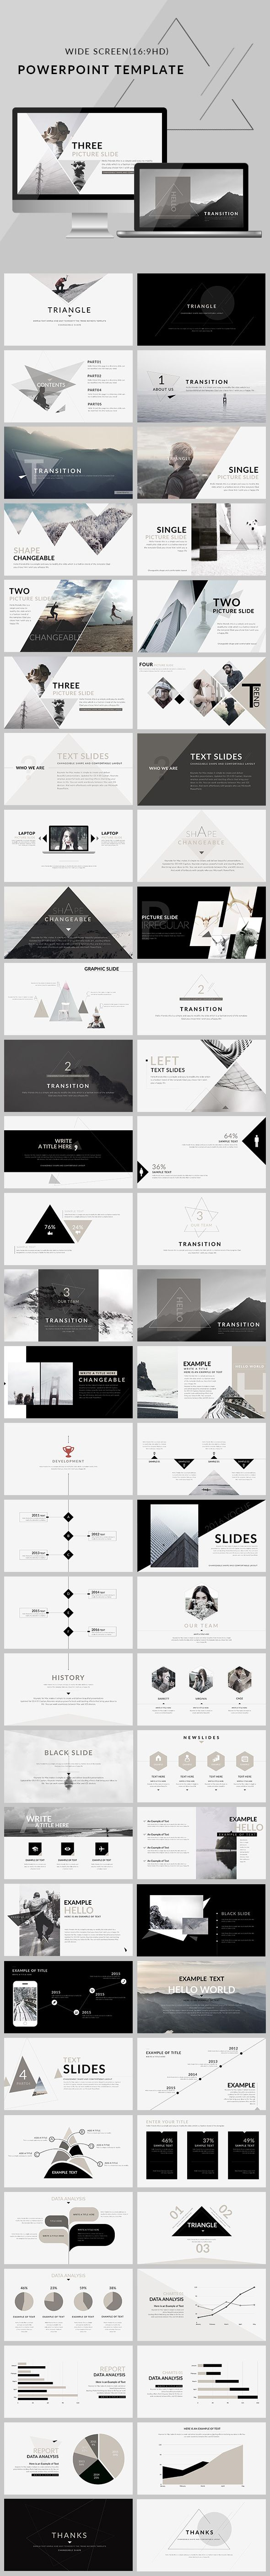 Triangle clean trend powerpoint presentation apresentao triangle clean trend powerpoint presentation toneelgroepblik Images